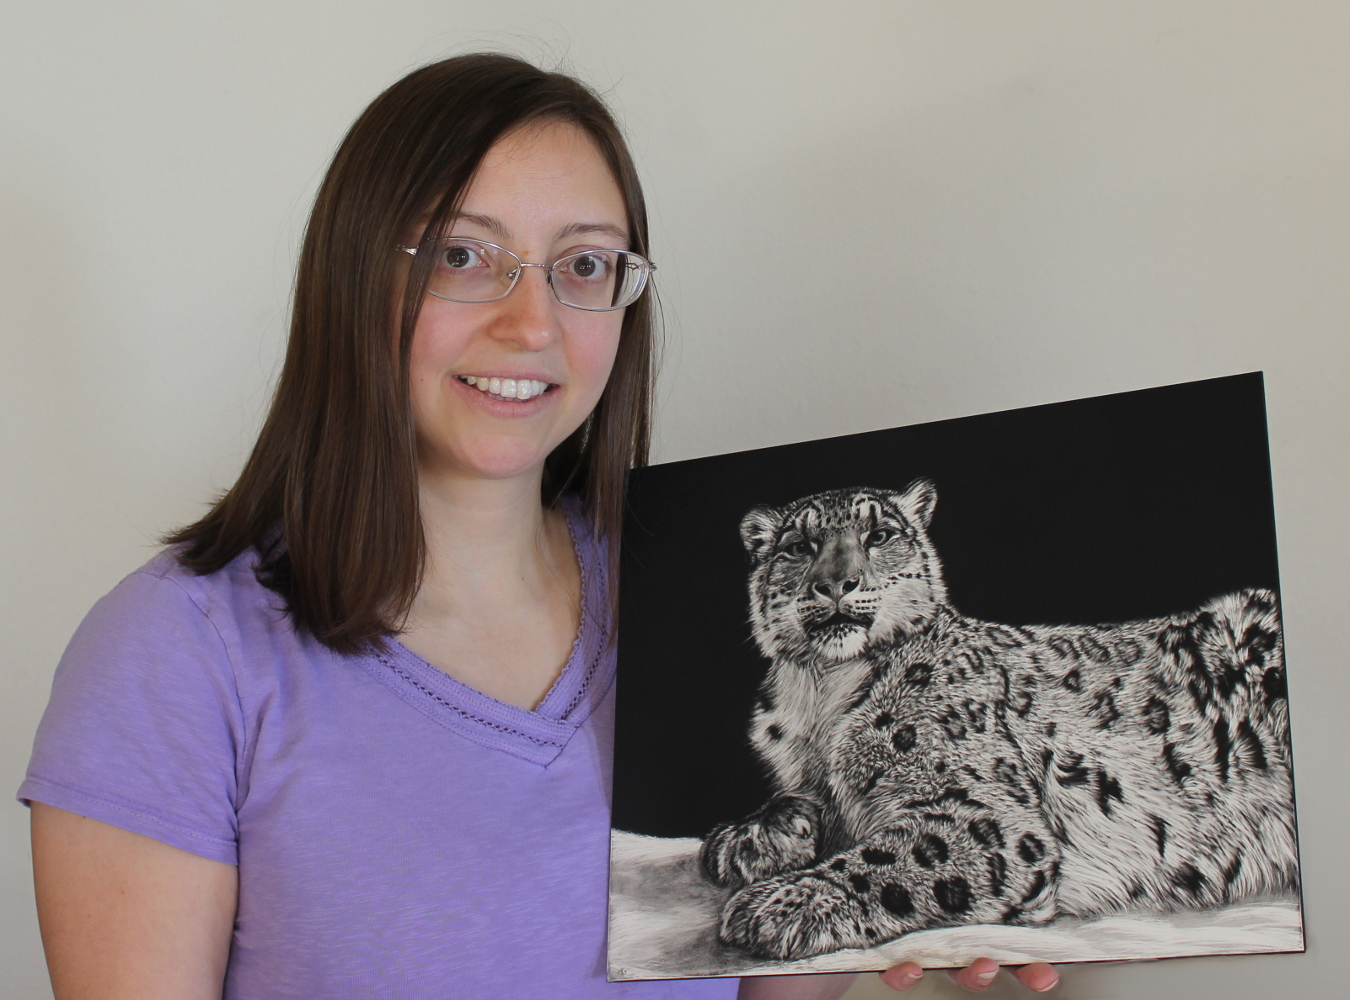 Heather Ward with a scratchboard drawing